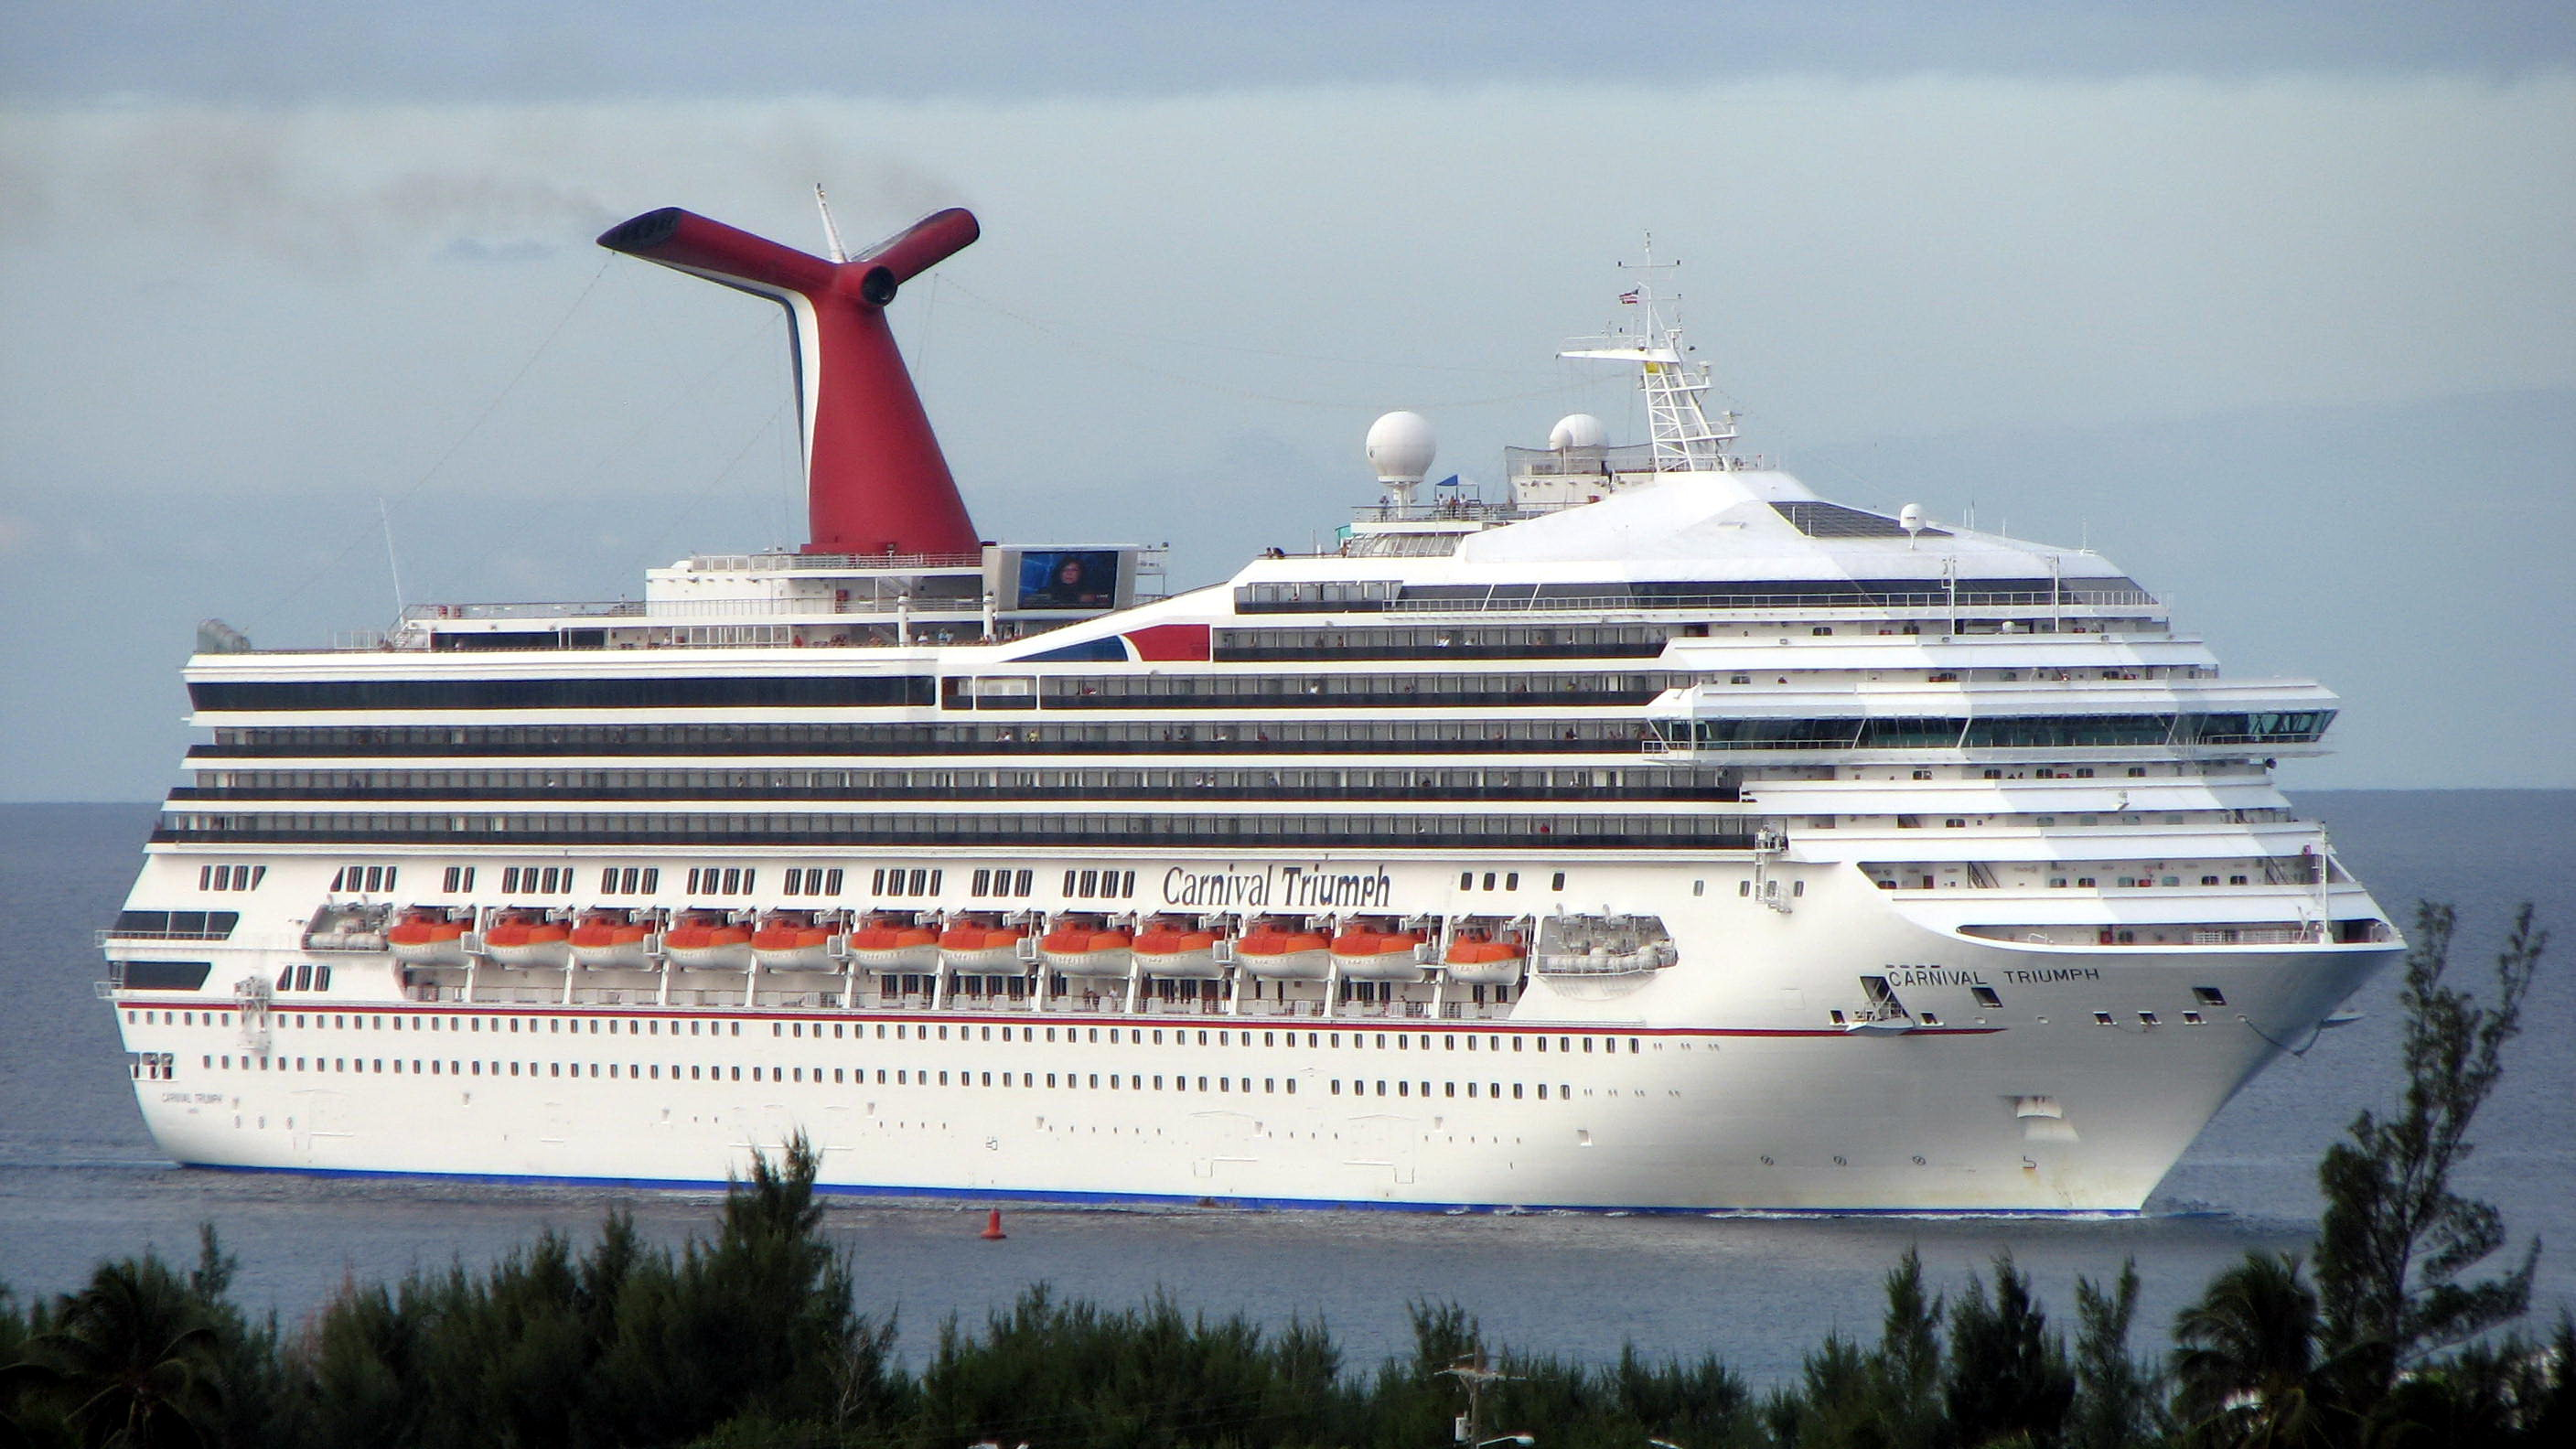 COSTA CONCORDIA_CARNIVAL_TRIUMPH_Arrest_Galveston_Article_Fortunes_de_Mer-02042012.jpg (1)